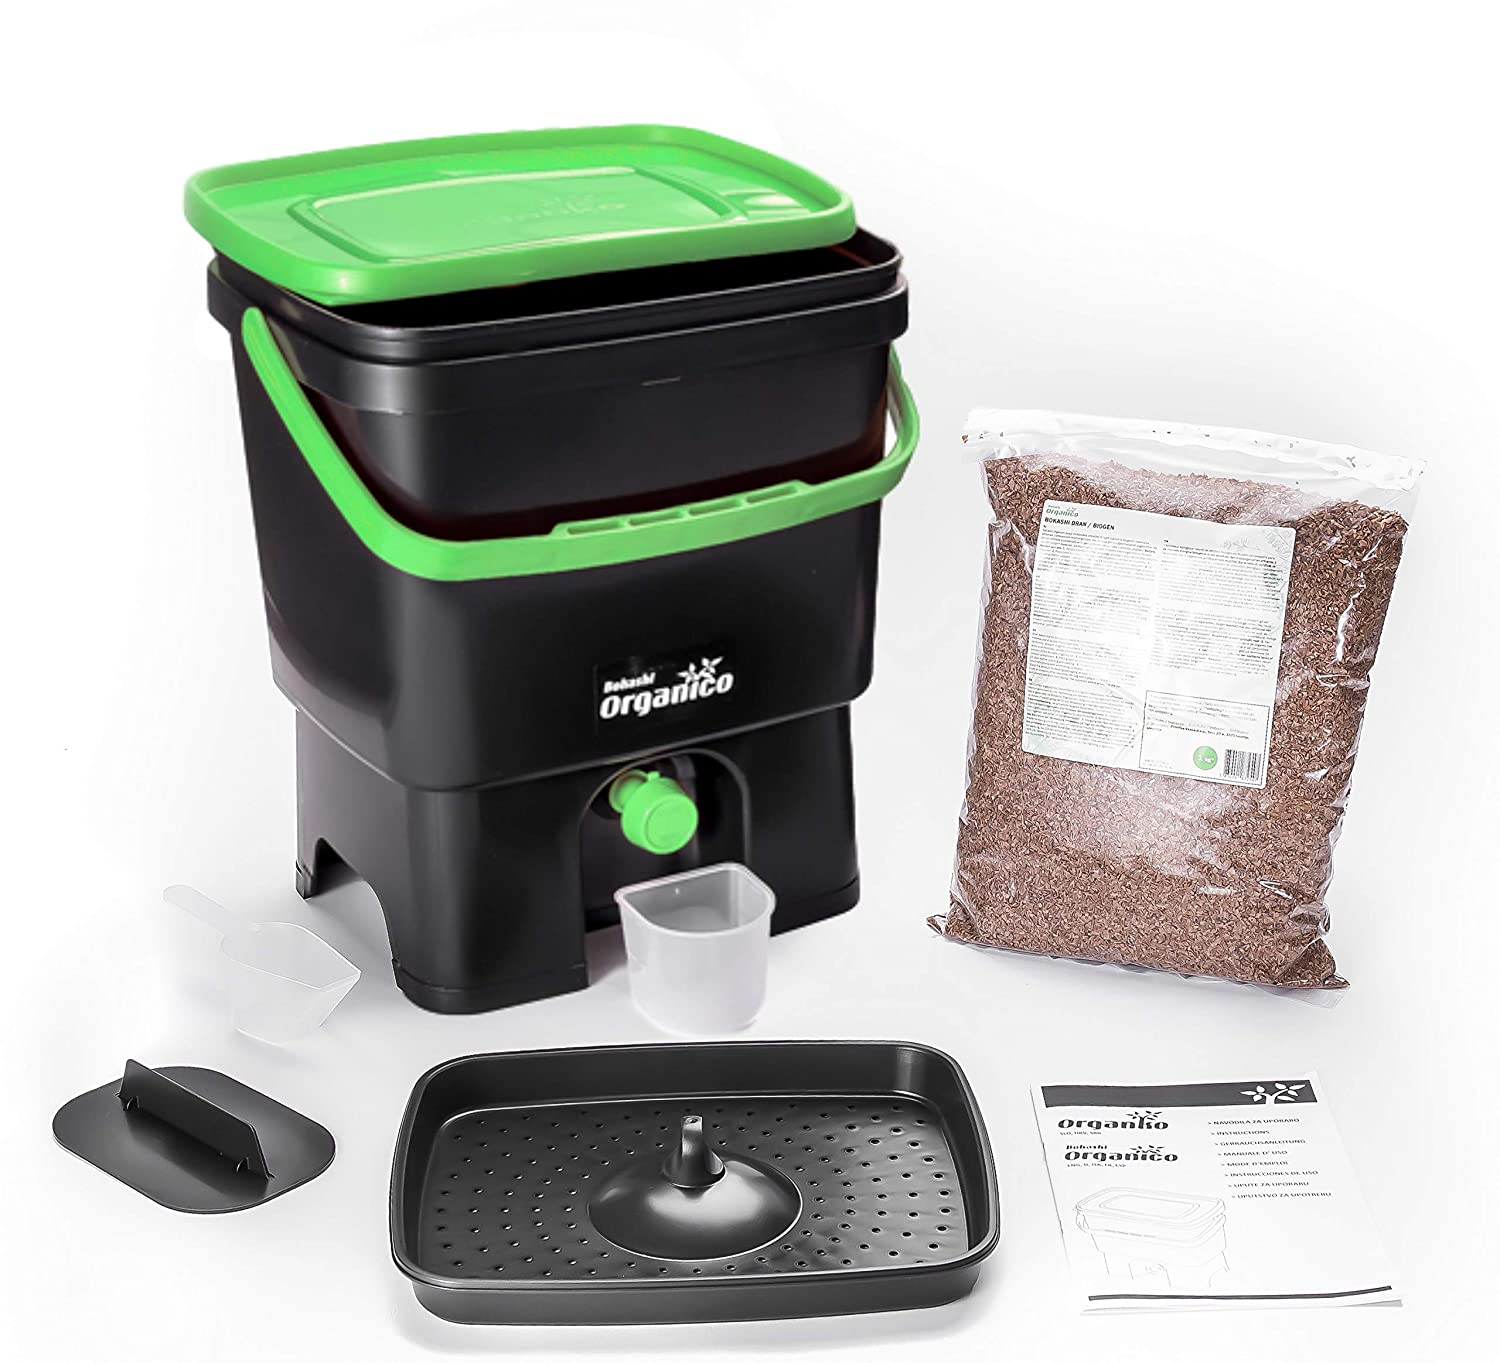 Composter Kit Black // Green Bokashi Organico Single with active Bran and Accessories Sustainable and Innovative Organic Waste Bin